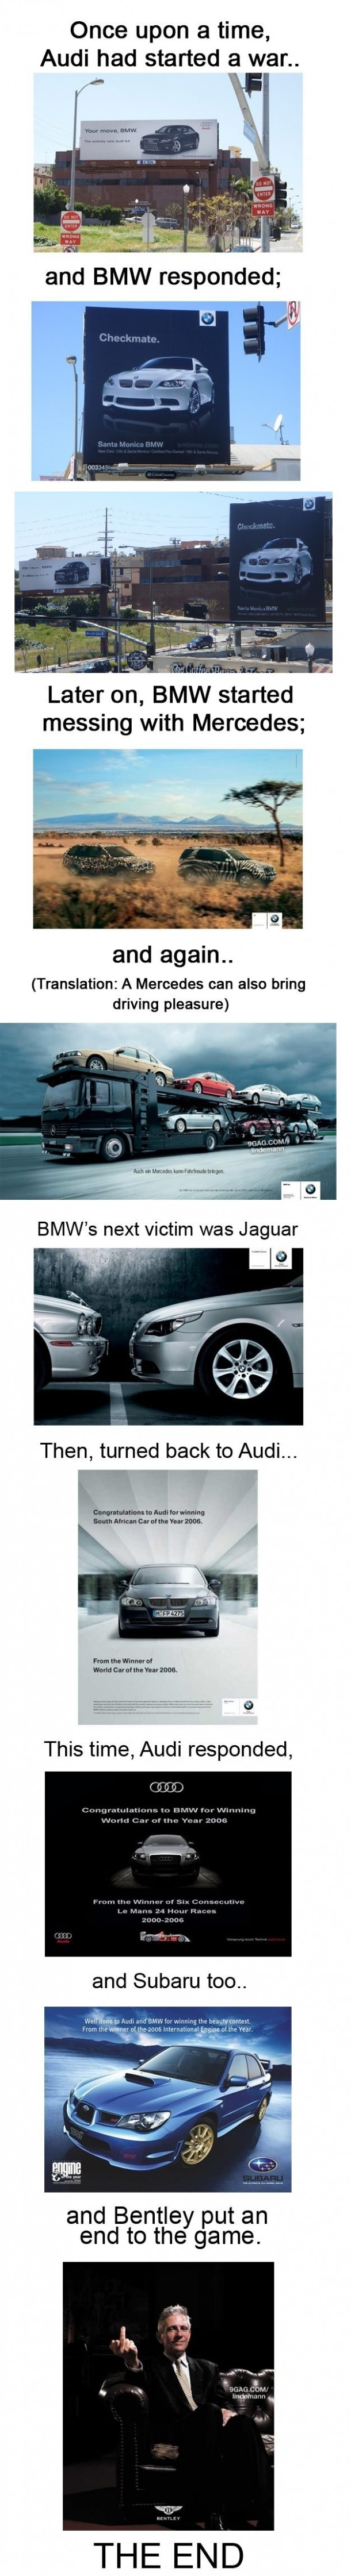 Audi started an ad war, BMW took it everywhere